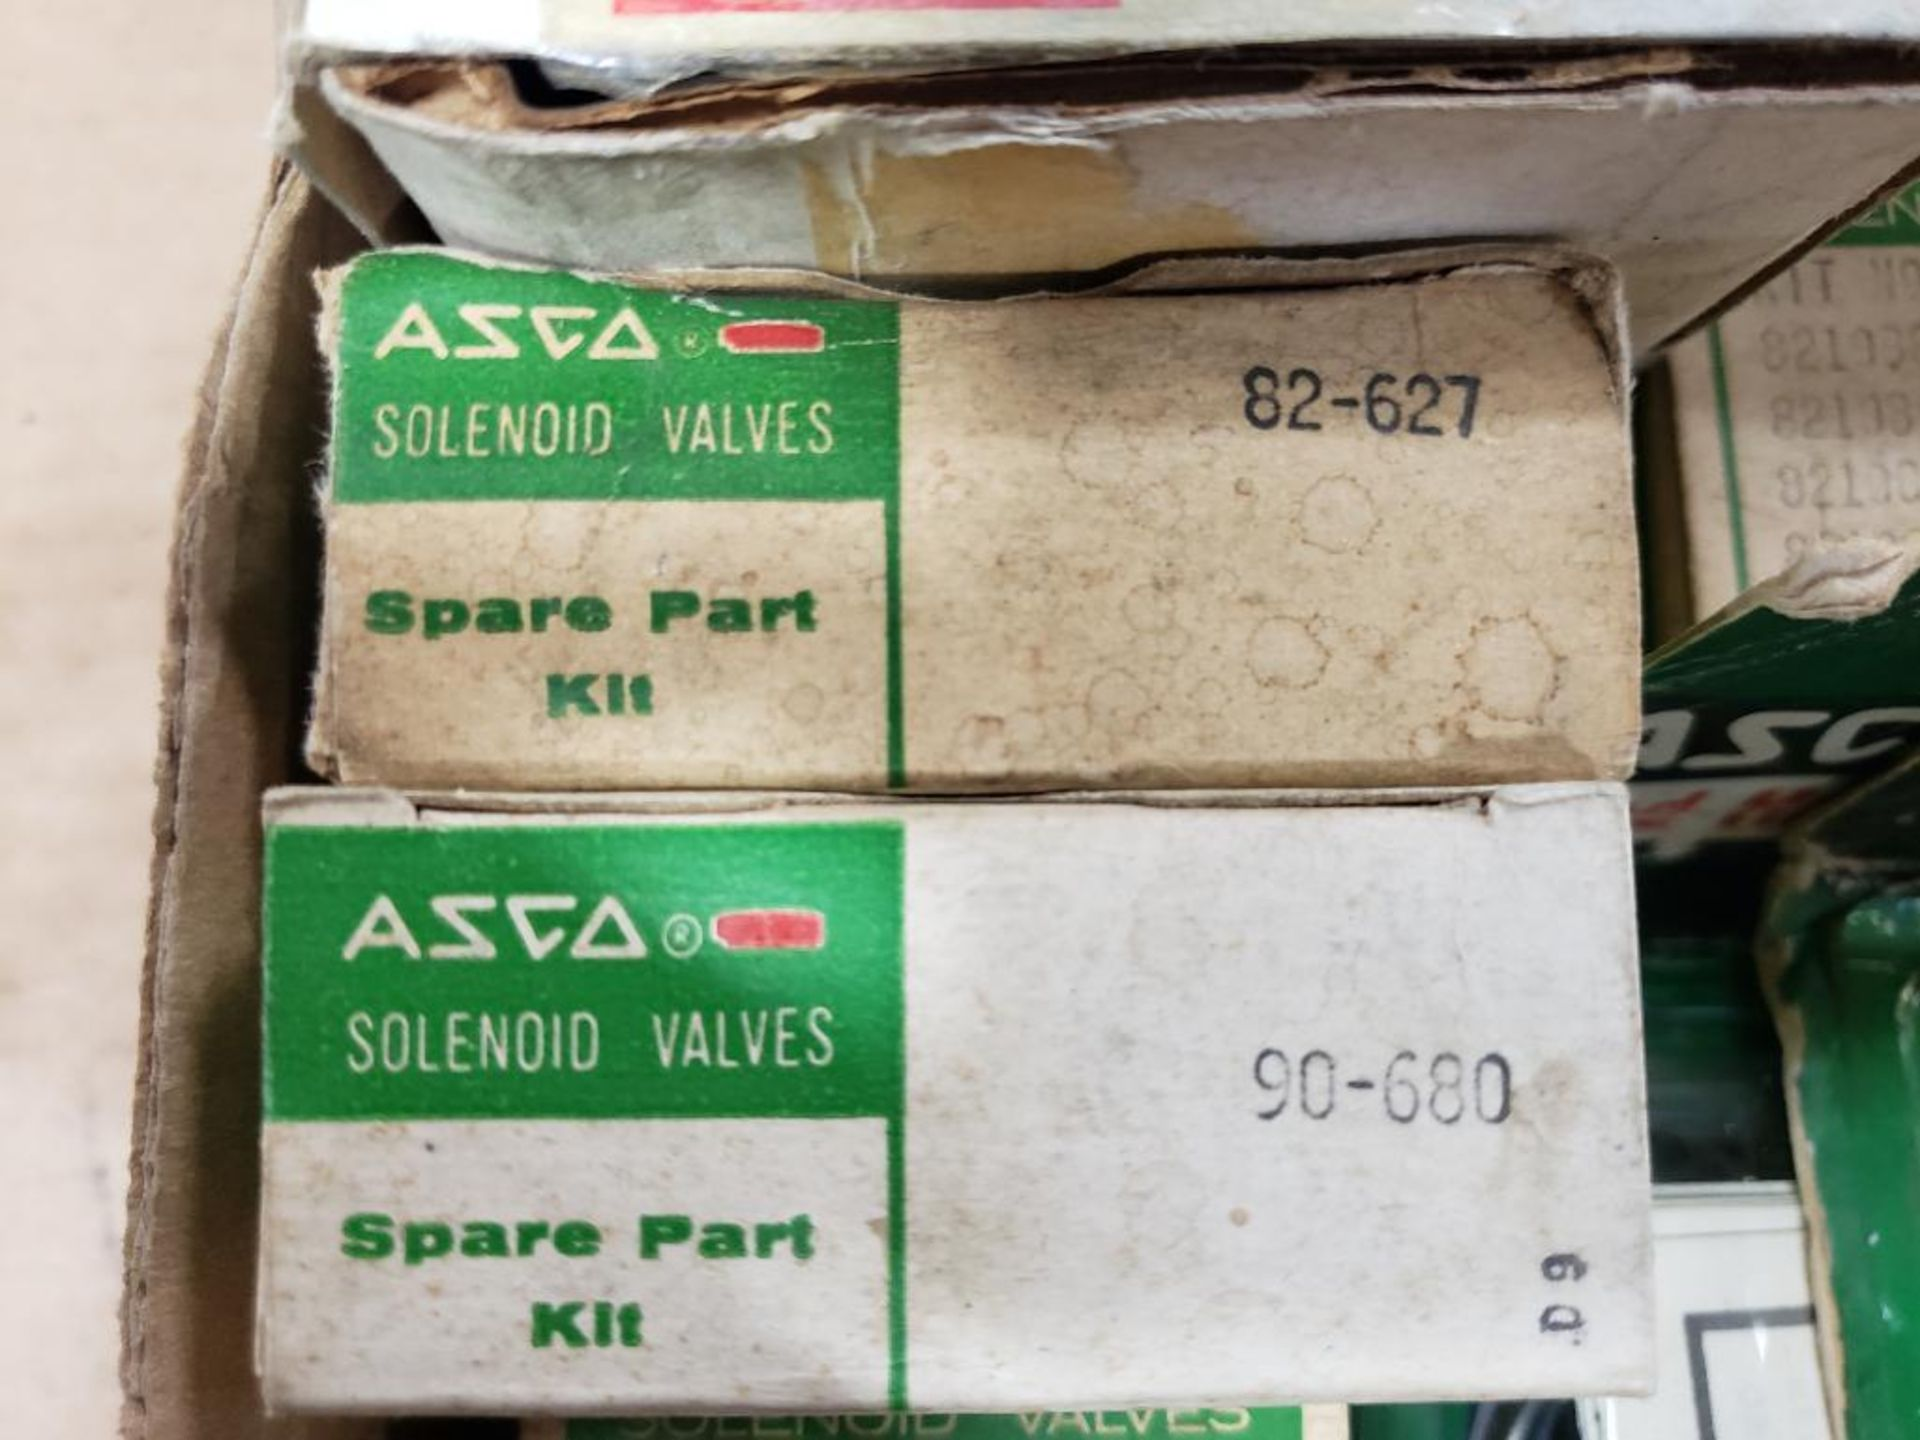 Assorted solenoid valves, and repair kits. Asco. - Image 3 of 15